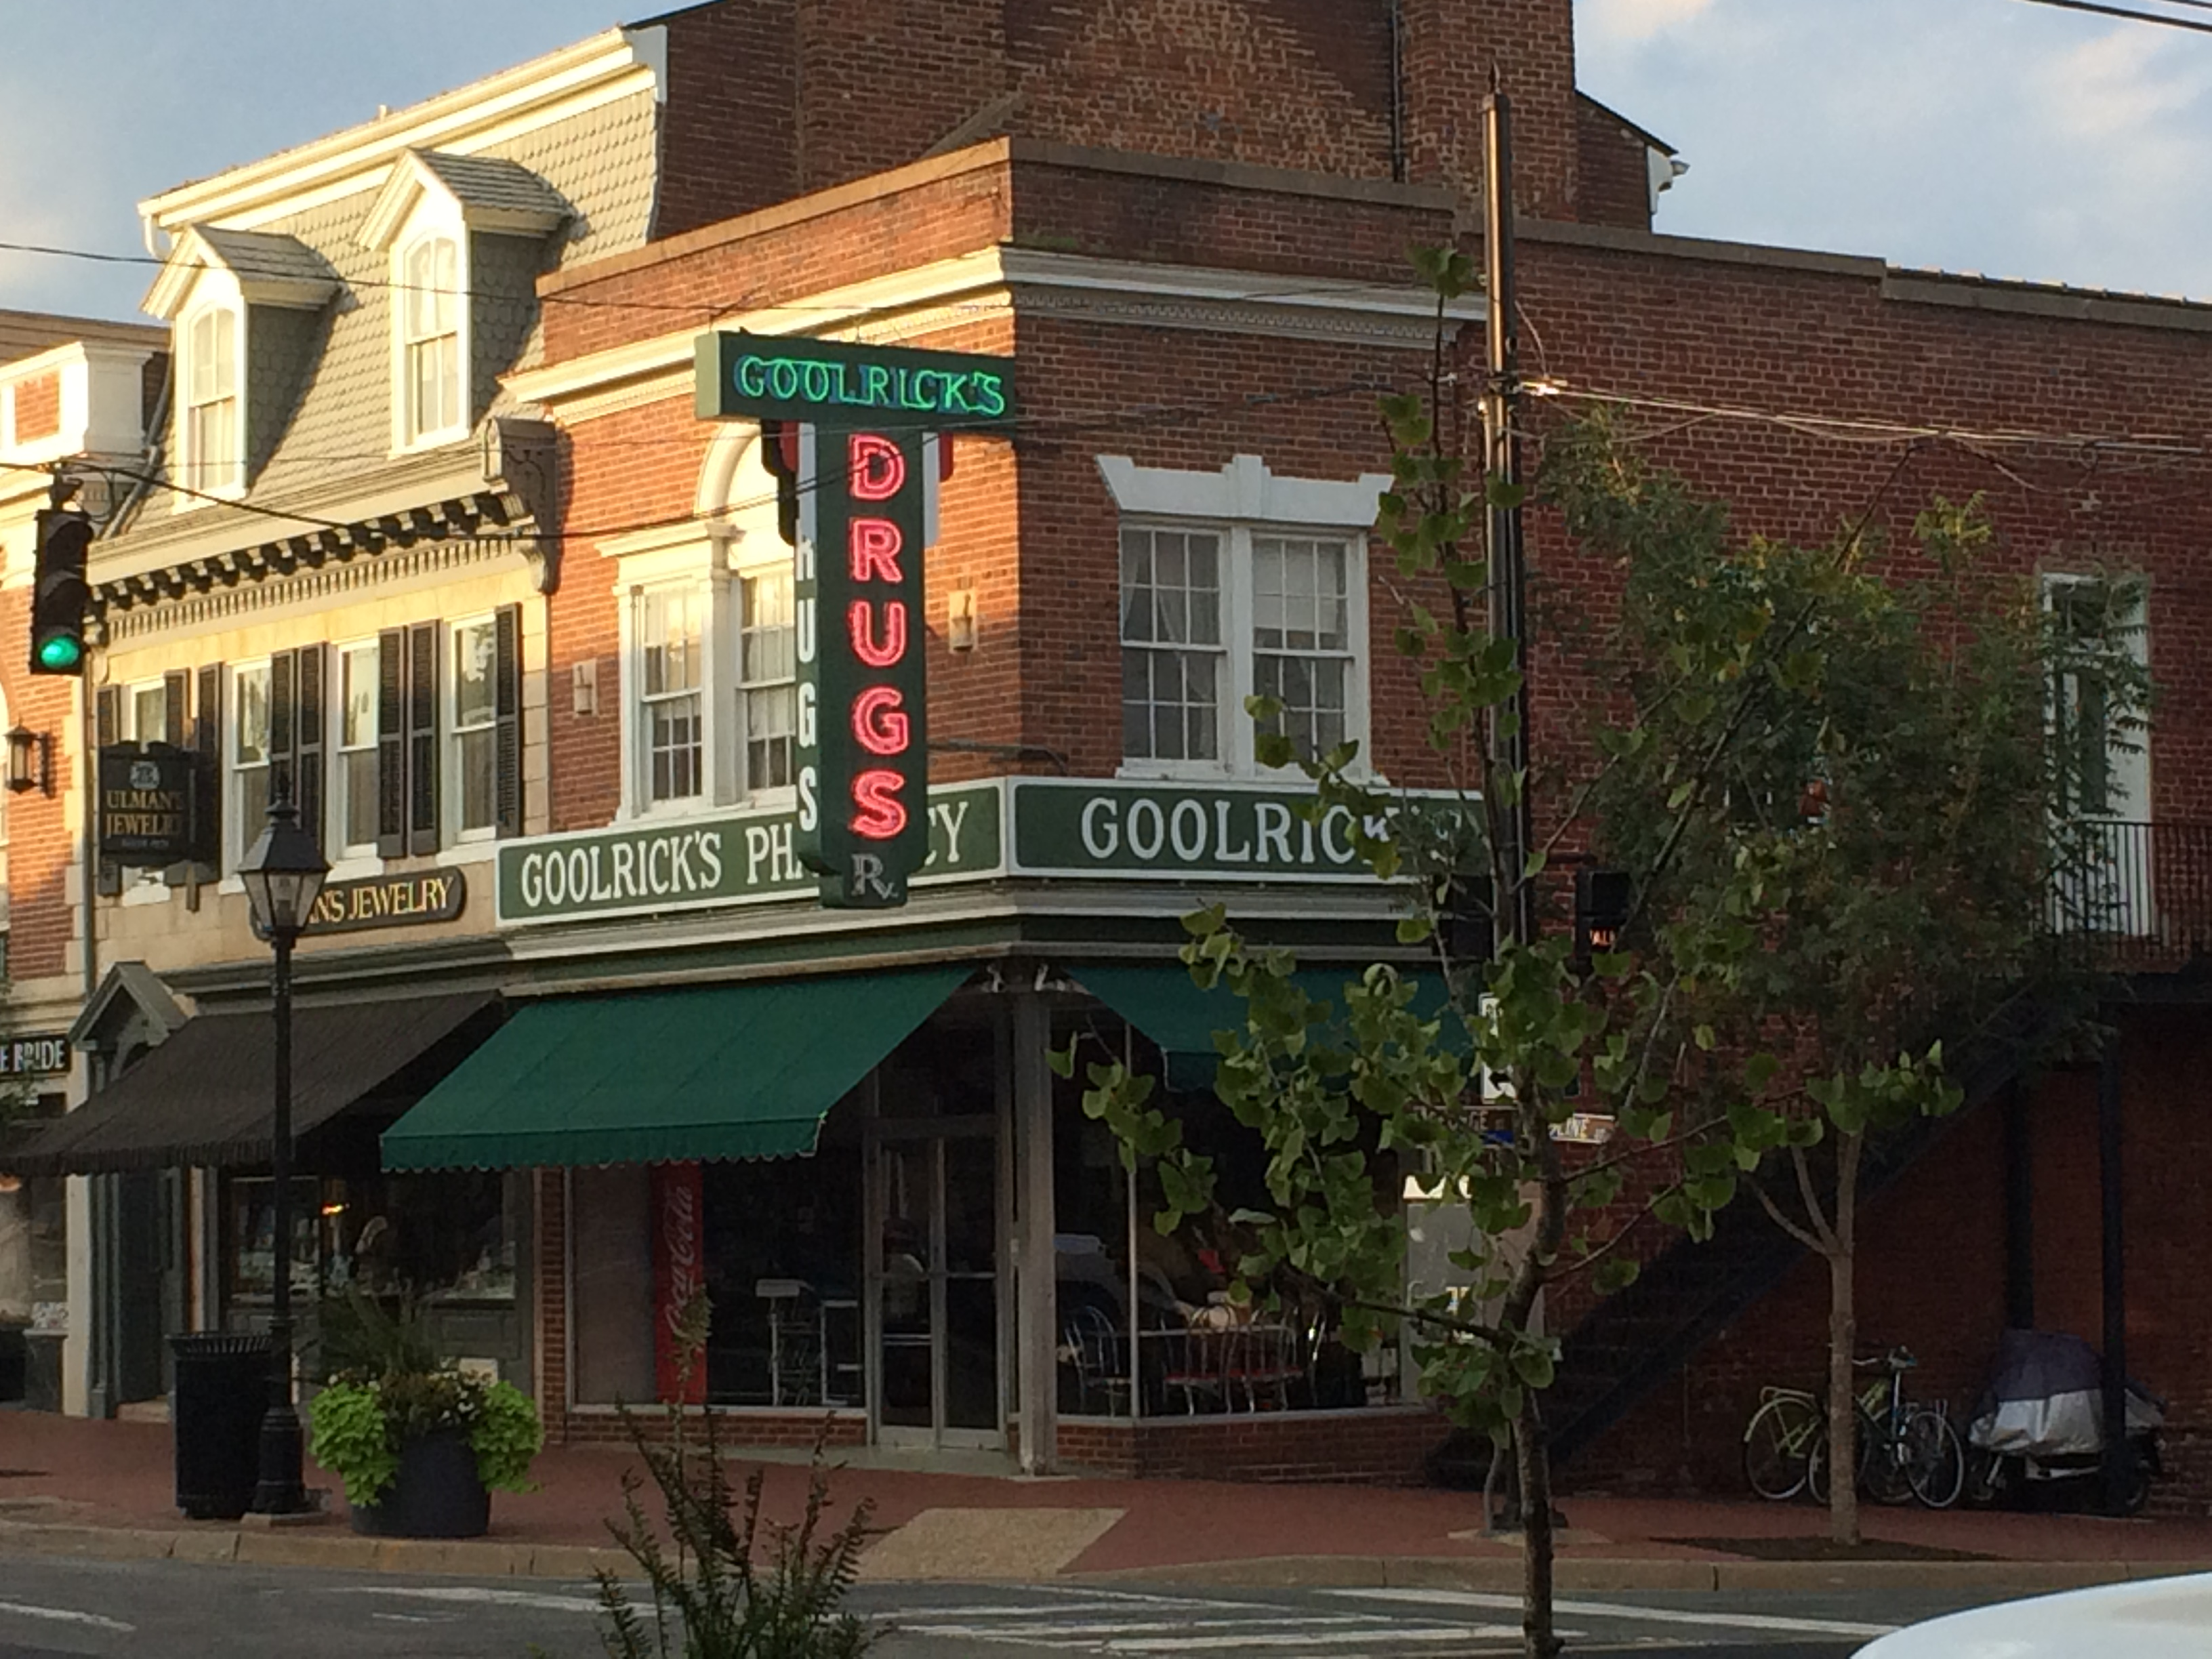 Goolricks Pharmacy